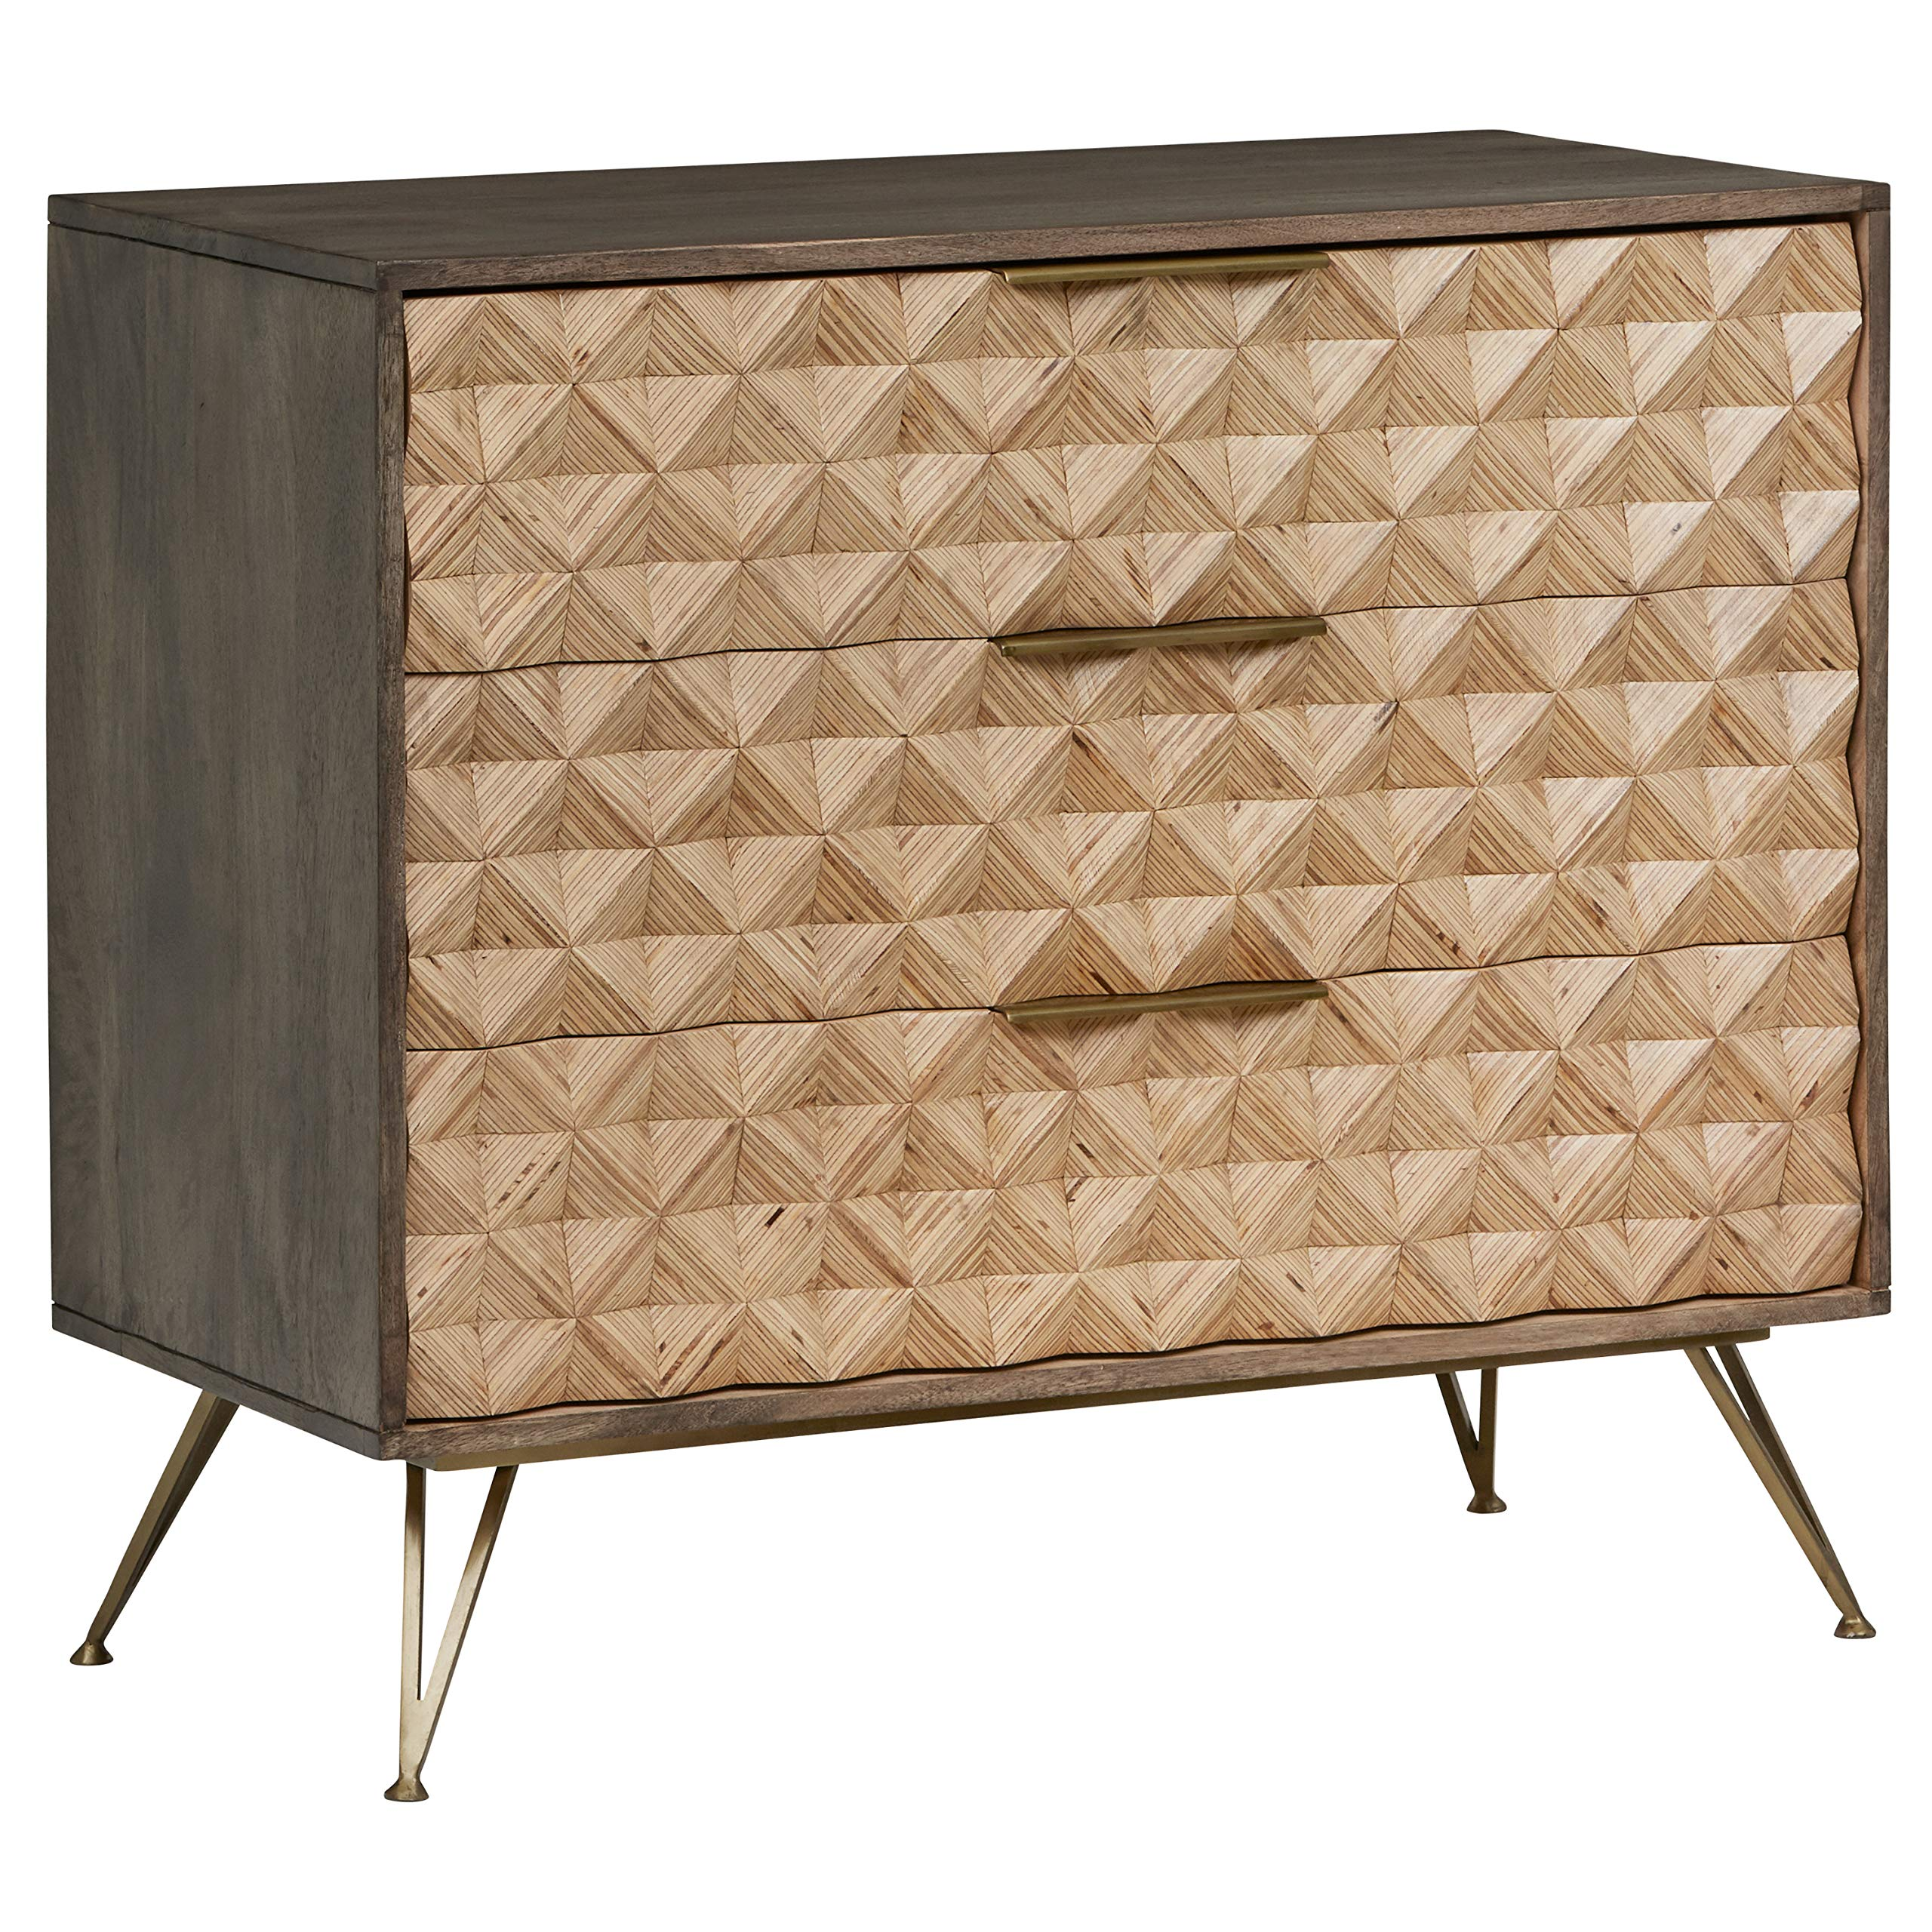 Rivet Modern Chest of Drawers with Diamond Pattern 17.7''W, Natural